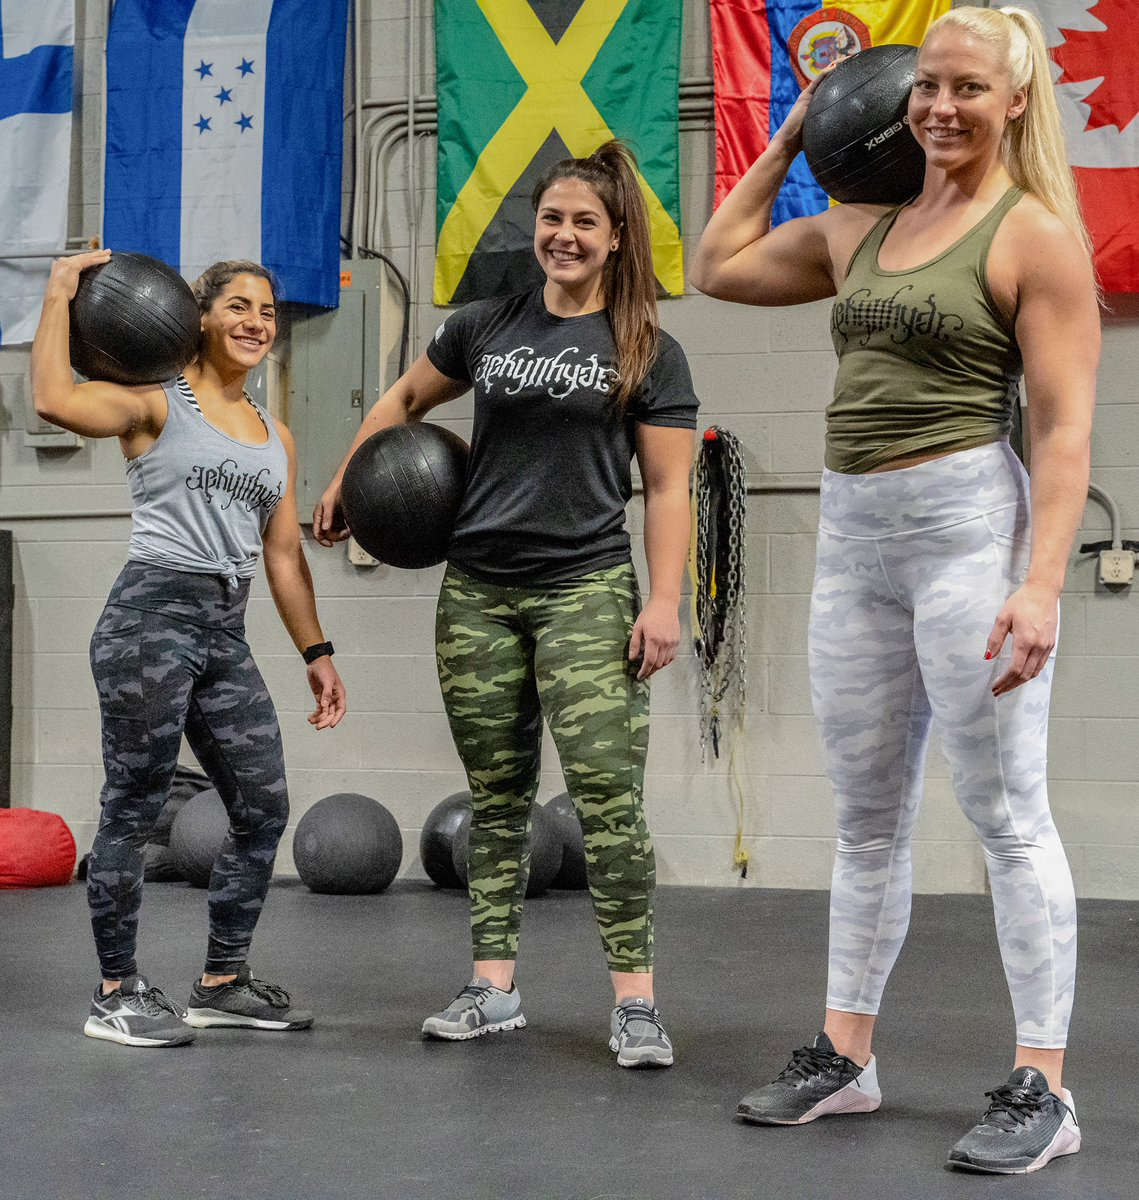 Strong comes in many forms and we support all of them. Happy international women's day. 💪🏼 . . #strong #internationalwomensday #jekyllhyde #jh #skull #beaker #leggings #camo